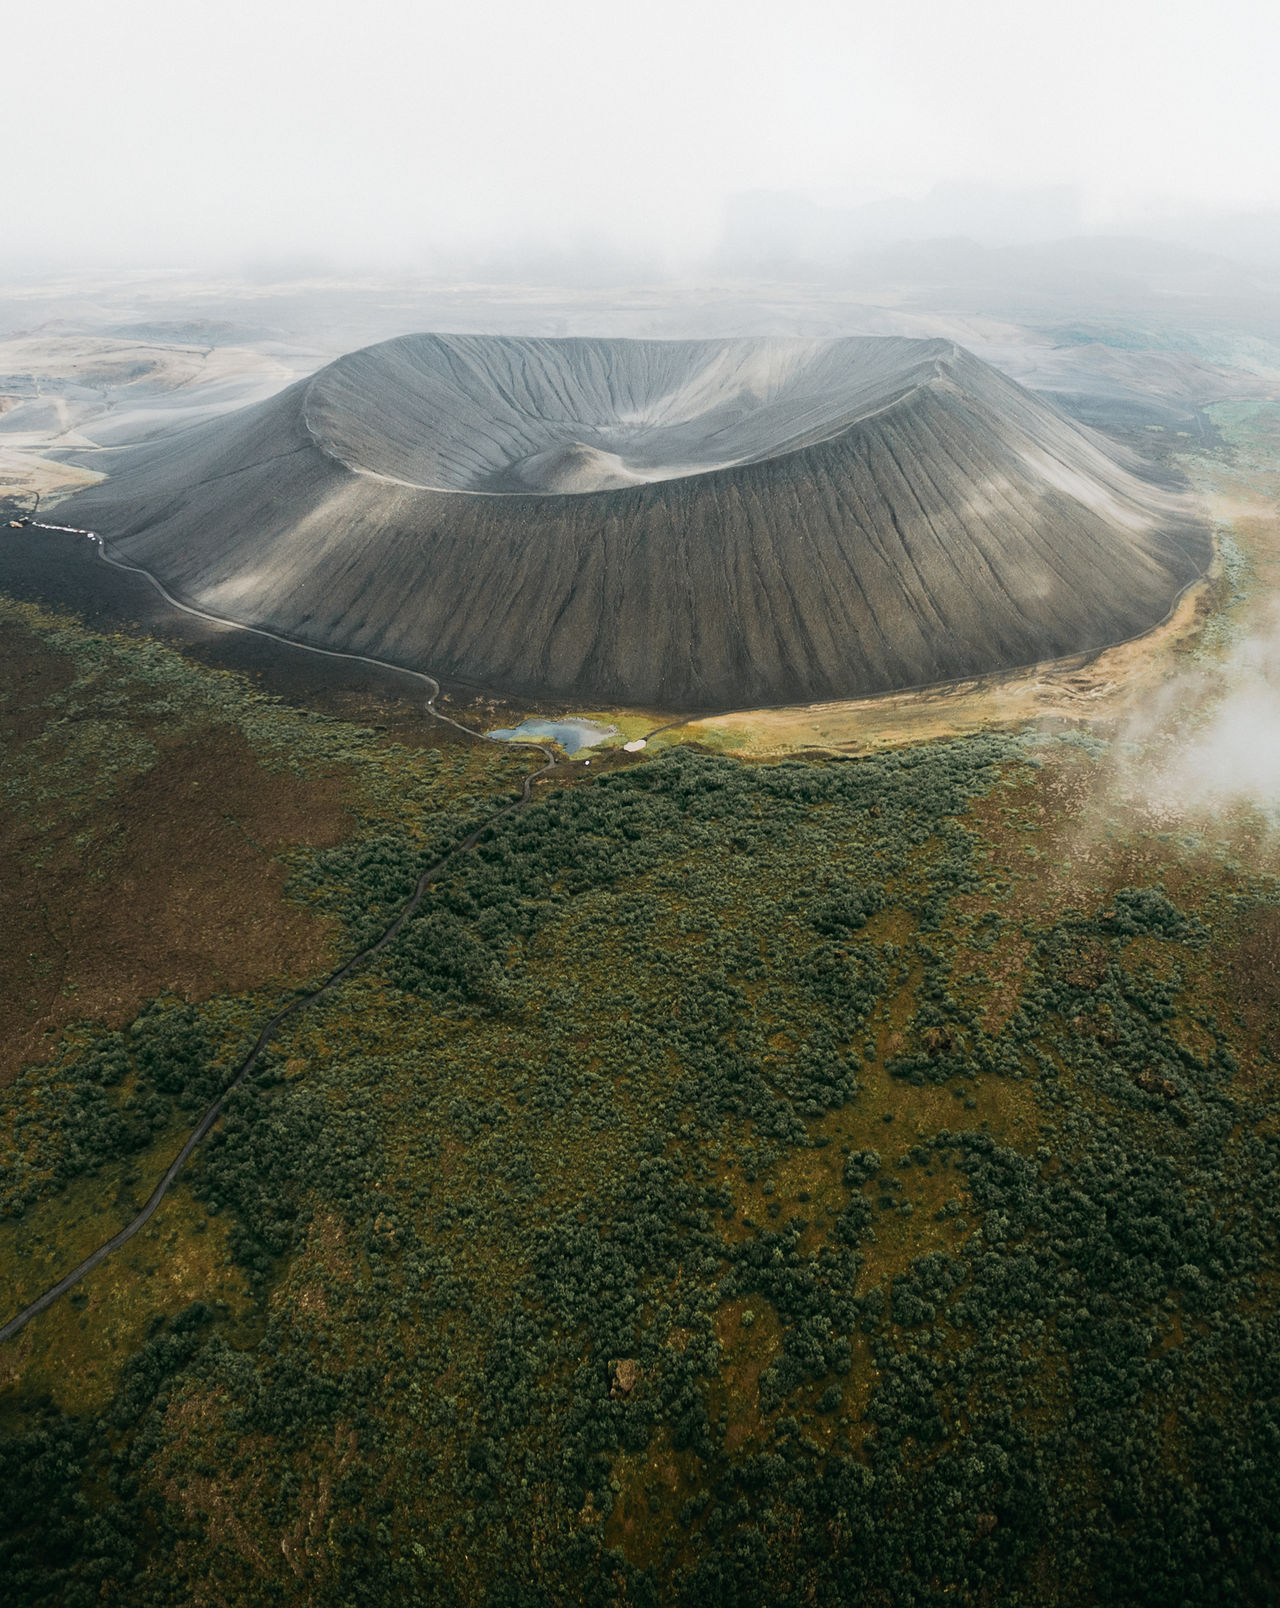 The Hverfjall volcano last erupted 2300 years ago. Adventure Club Aerial Mountains Volcano Aerial Photography Iceland Clouds Europe Landscape Adventure Outdoors Showcase July A Bird's Eye View